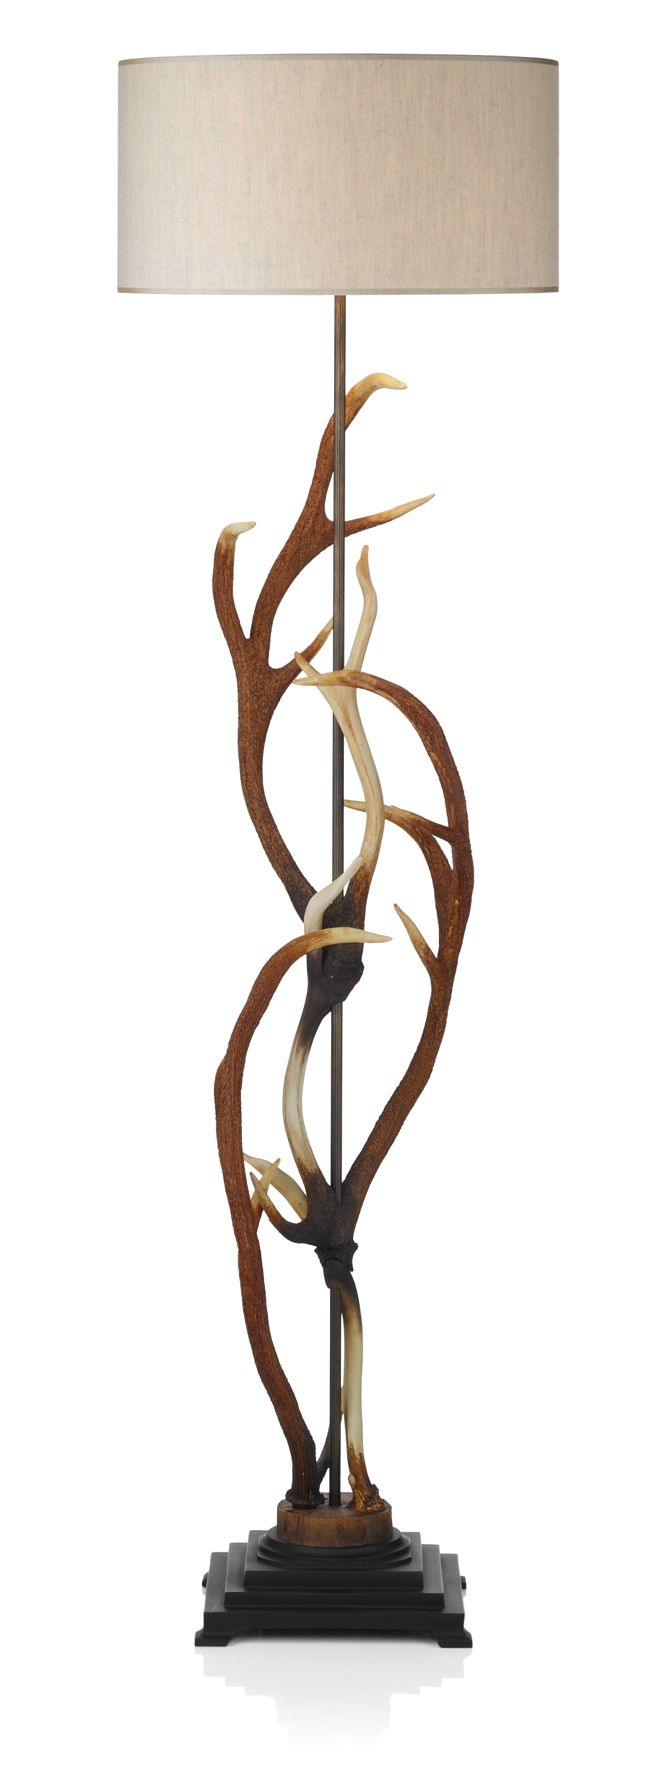 David Hunt ANT4929 Antler Floor Lamp complete with Cream shade.